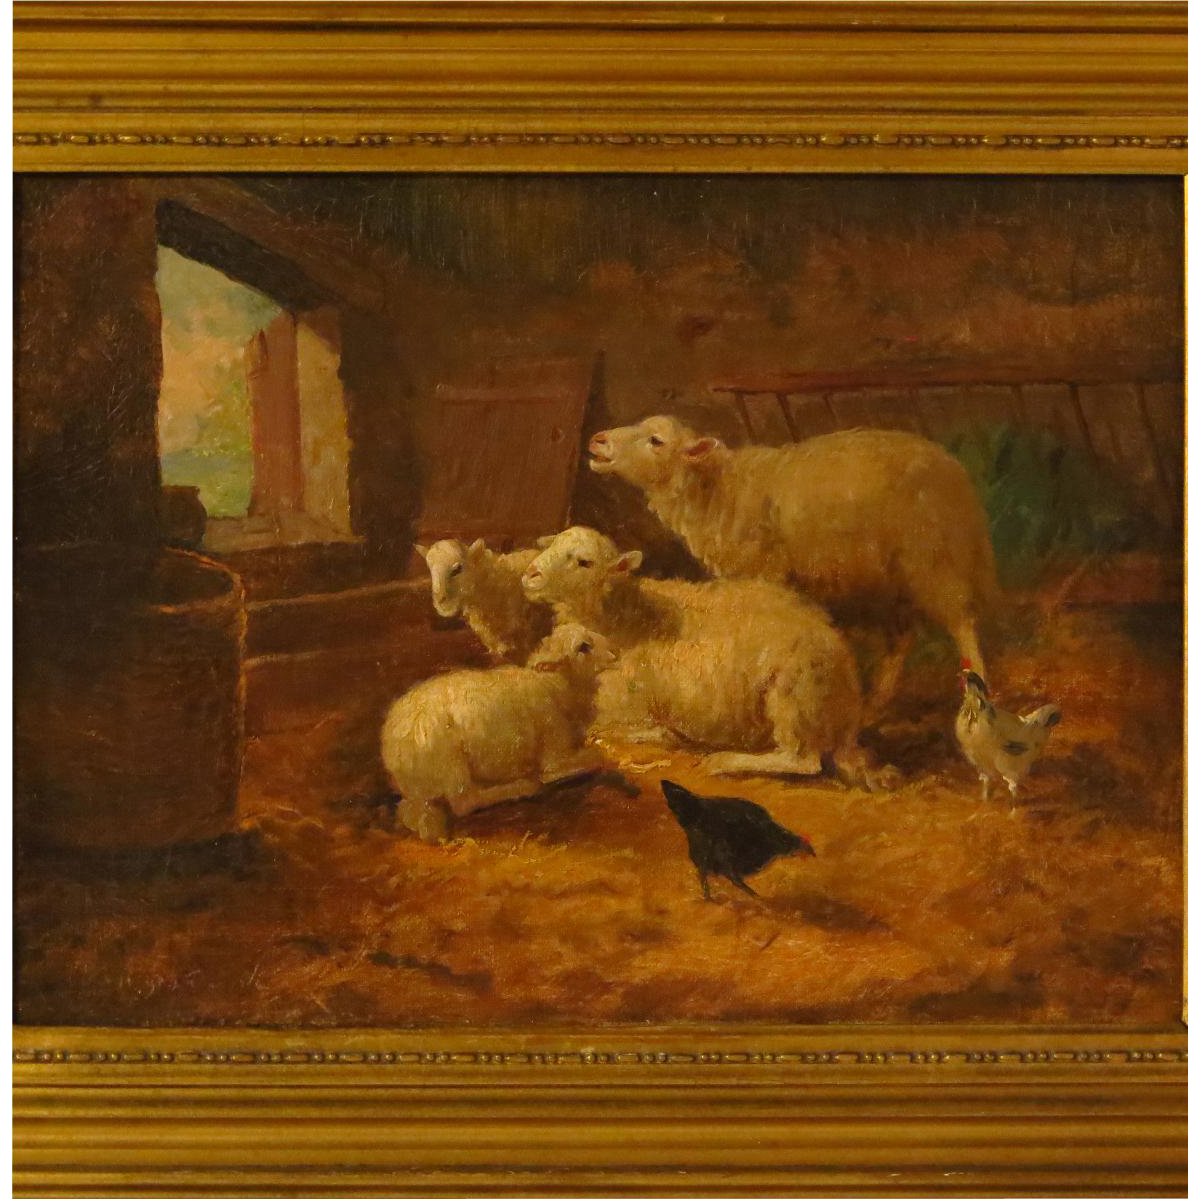 19th Century Oil Painting Sheep And Chickens In Barn